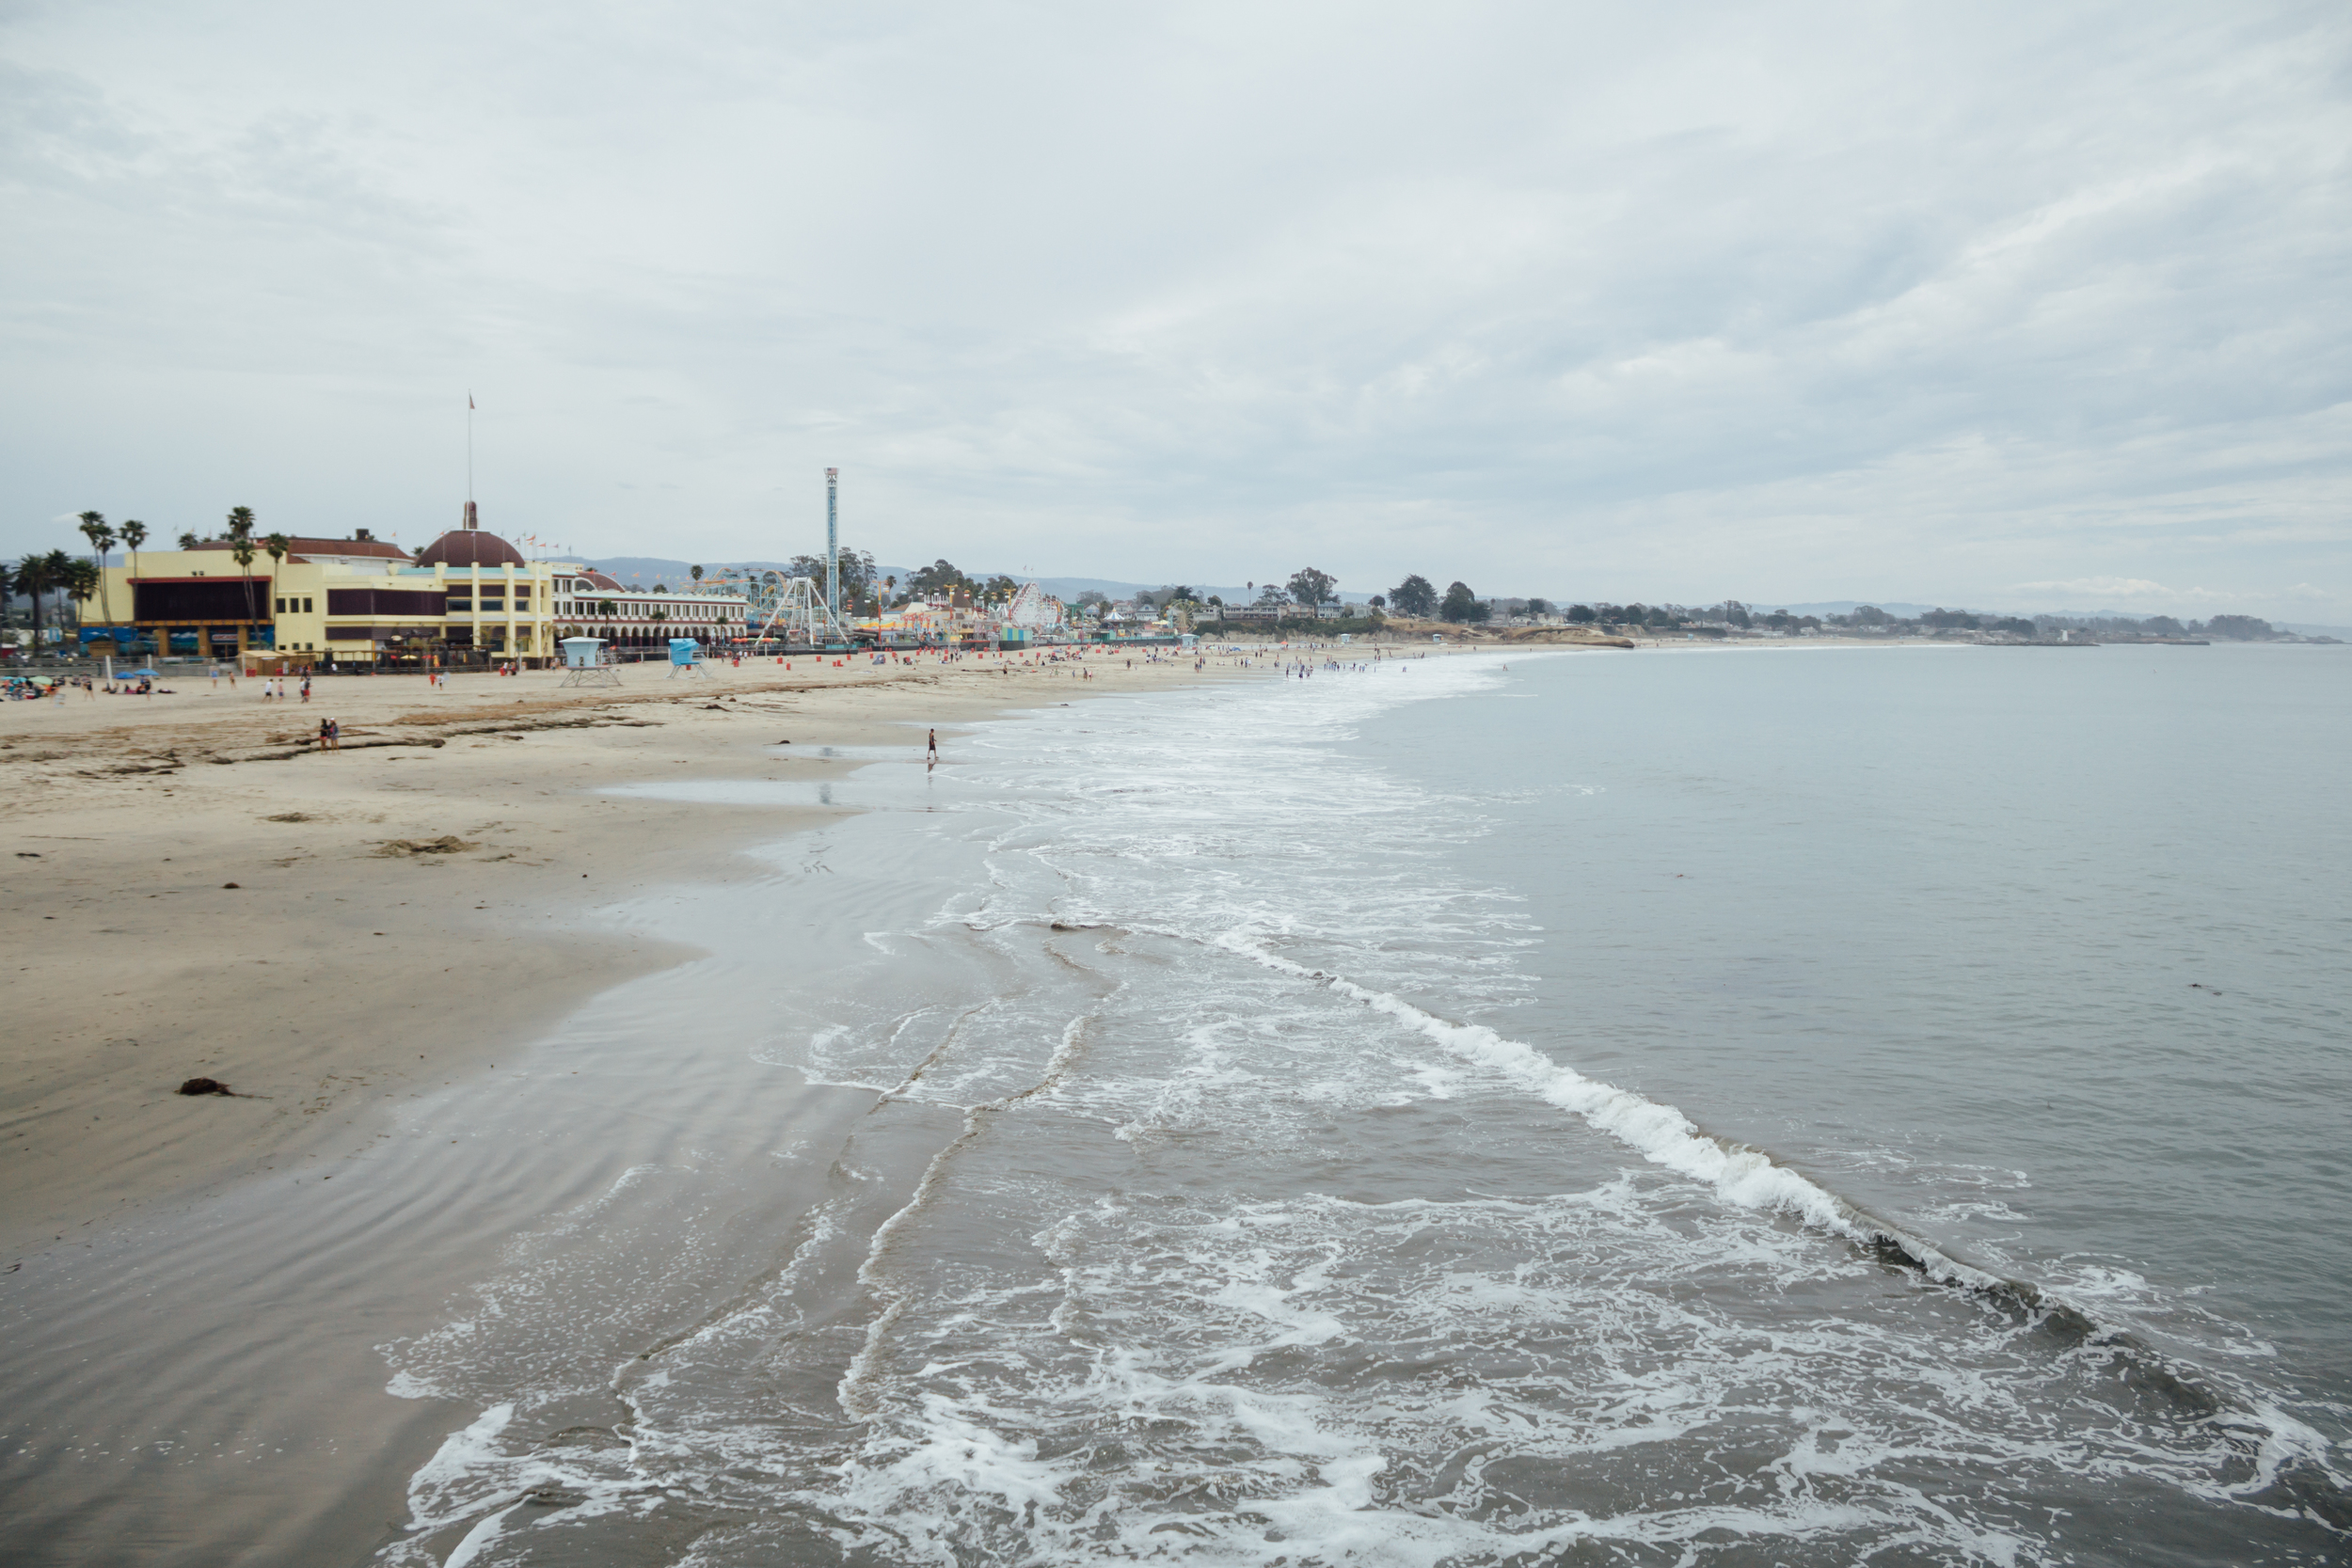 Santa Cruz Boardwalk by Catherine Alyce